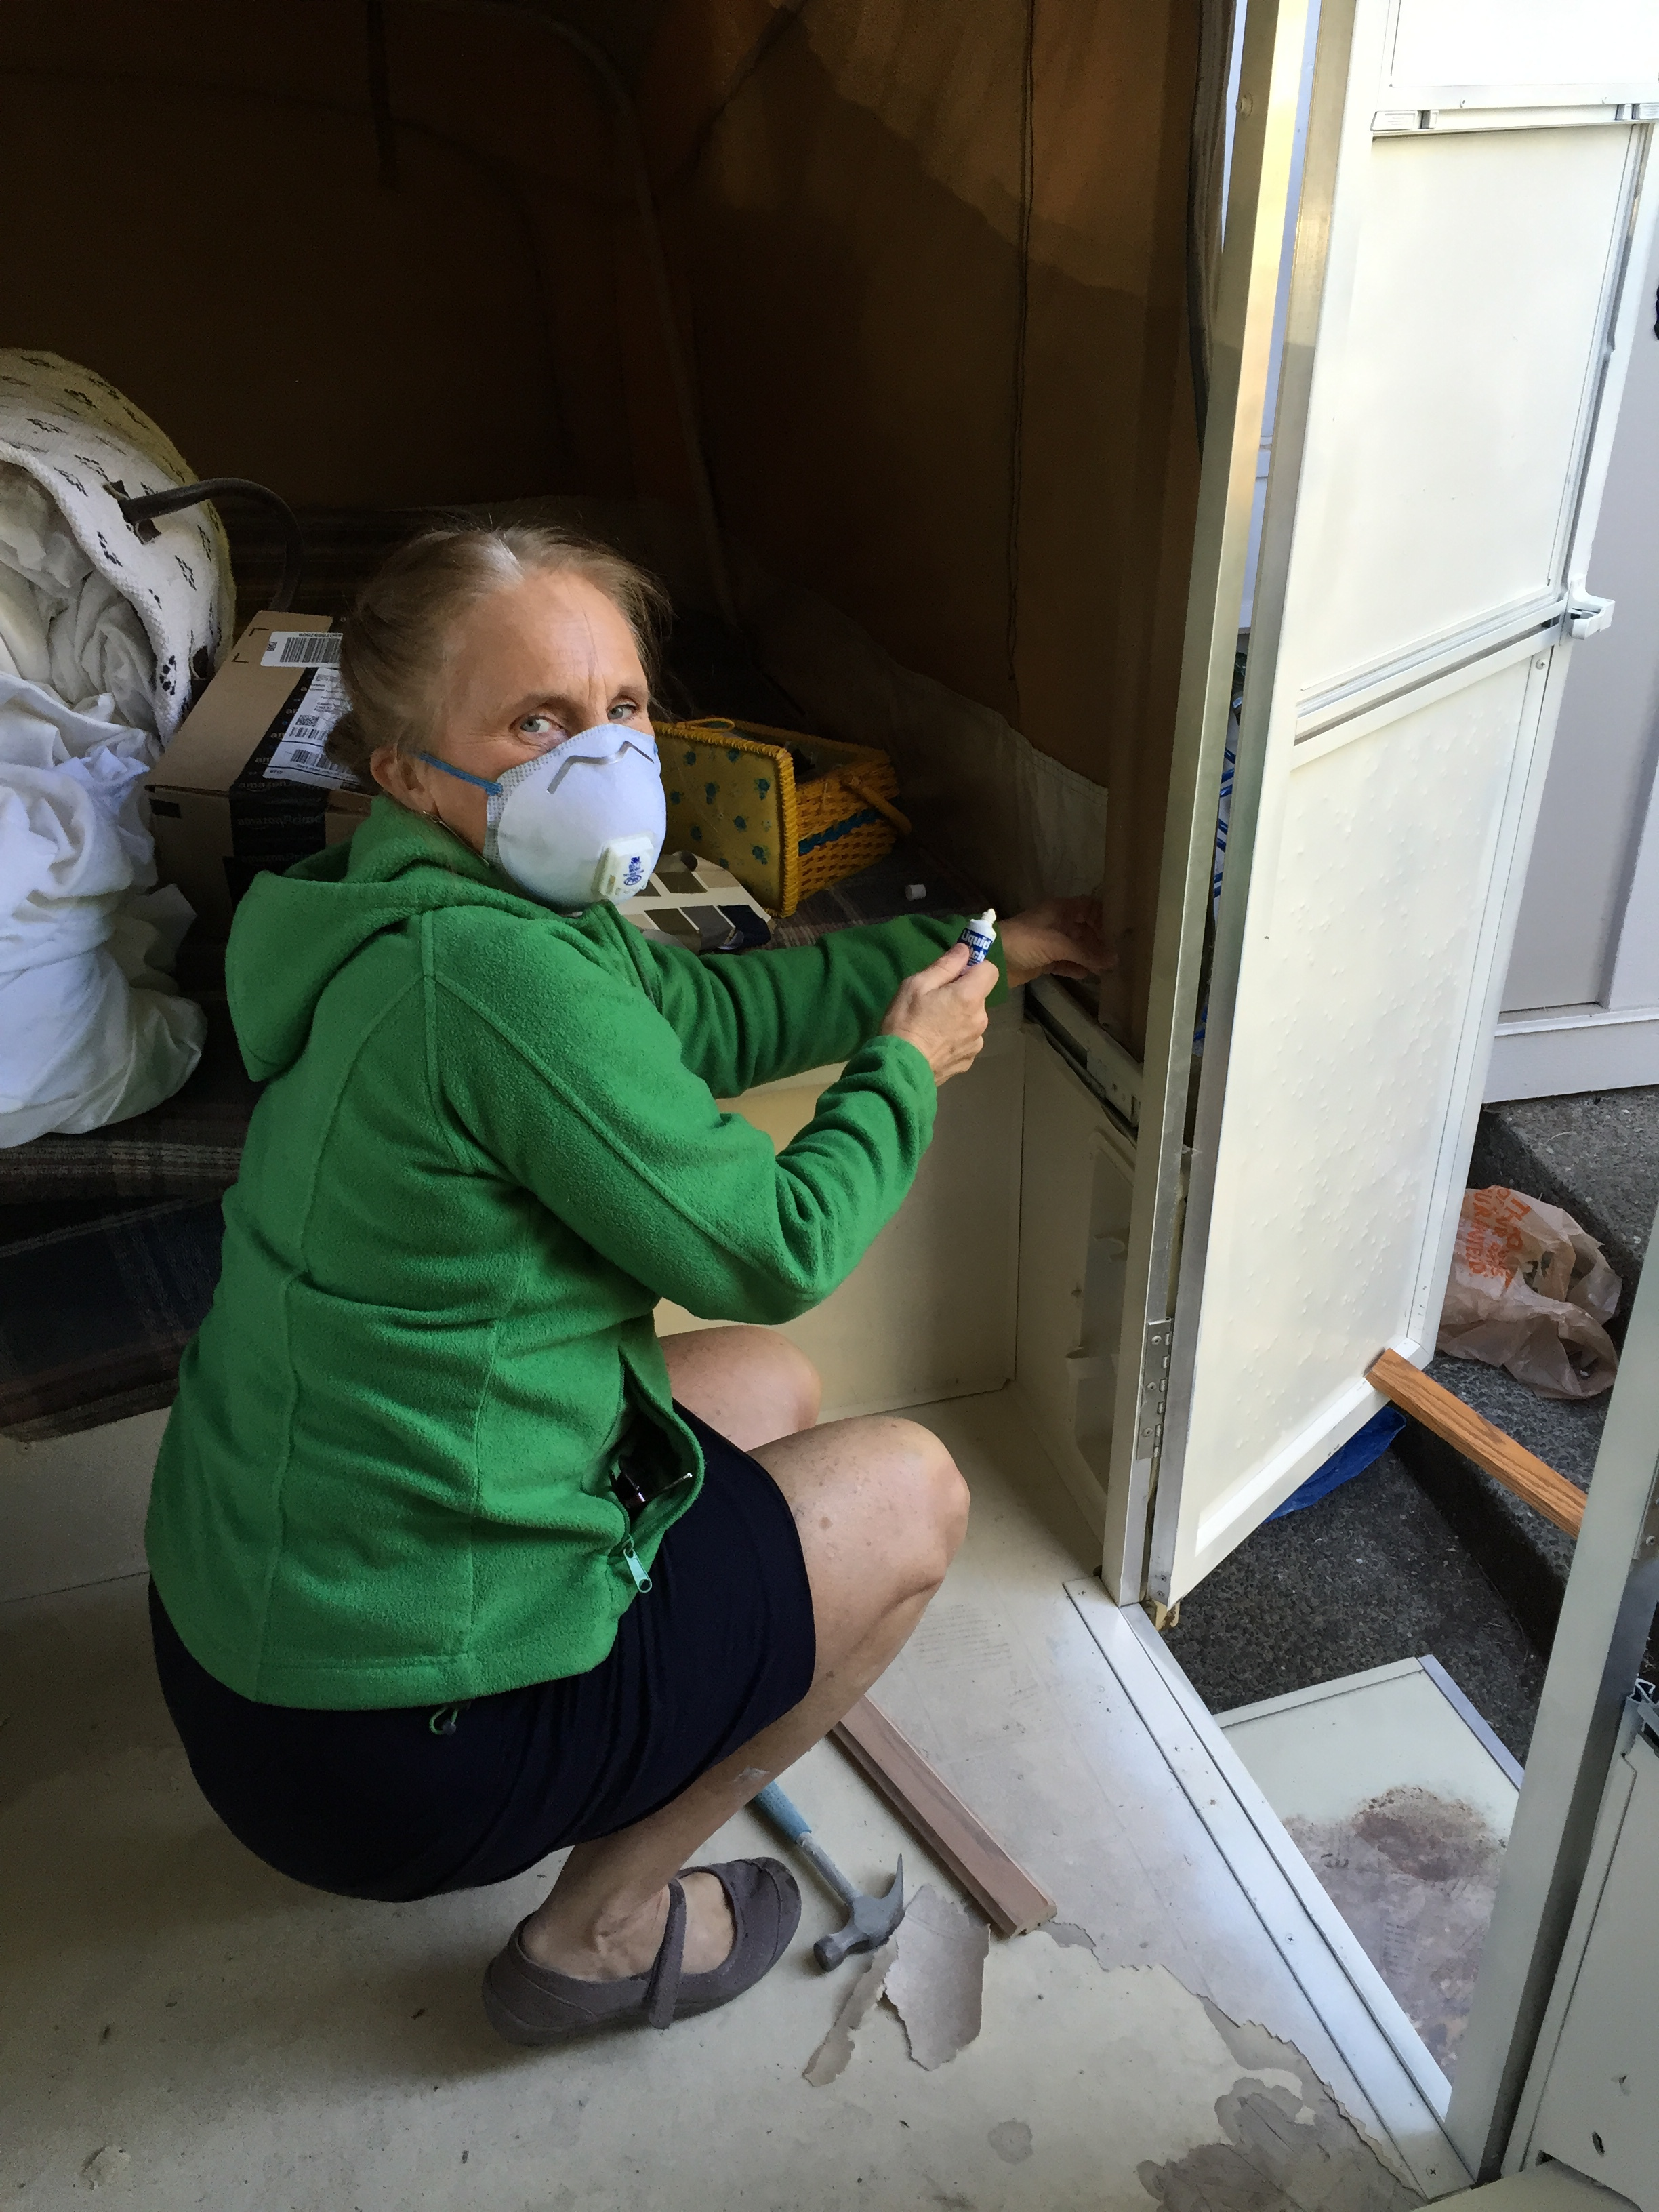 This is my mom, dressed in her church clothes and sewing patches onto the canvas of my tent trailer while I painted the cabinets.